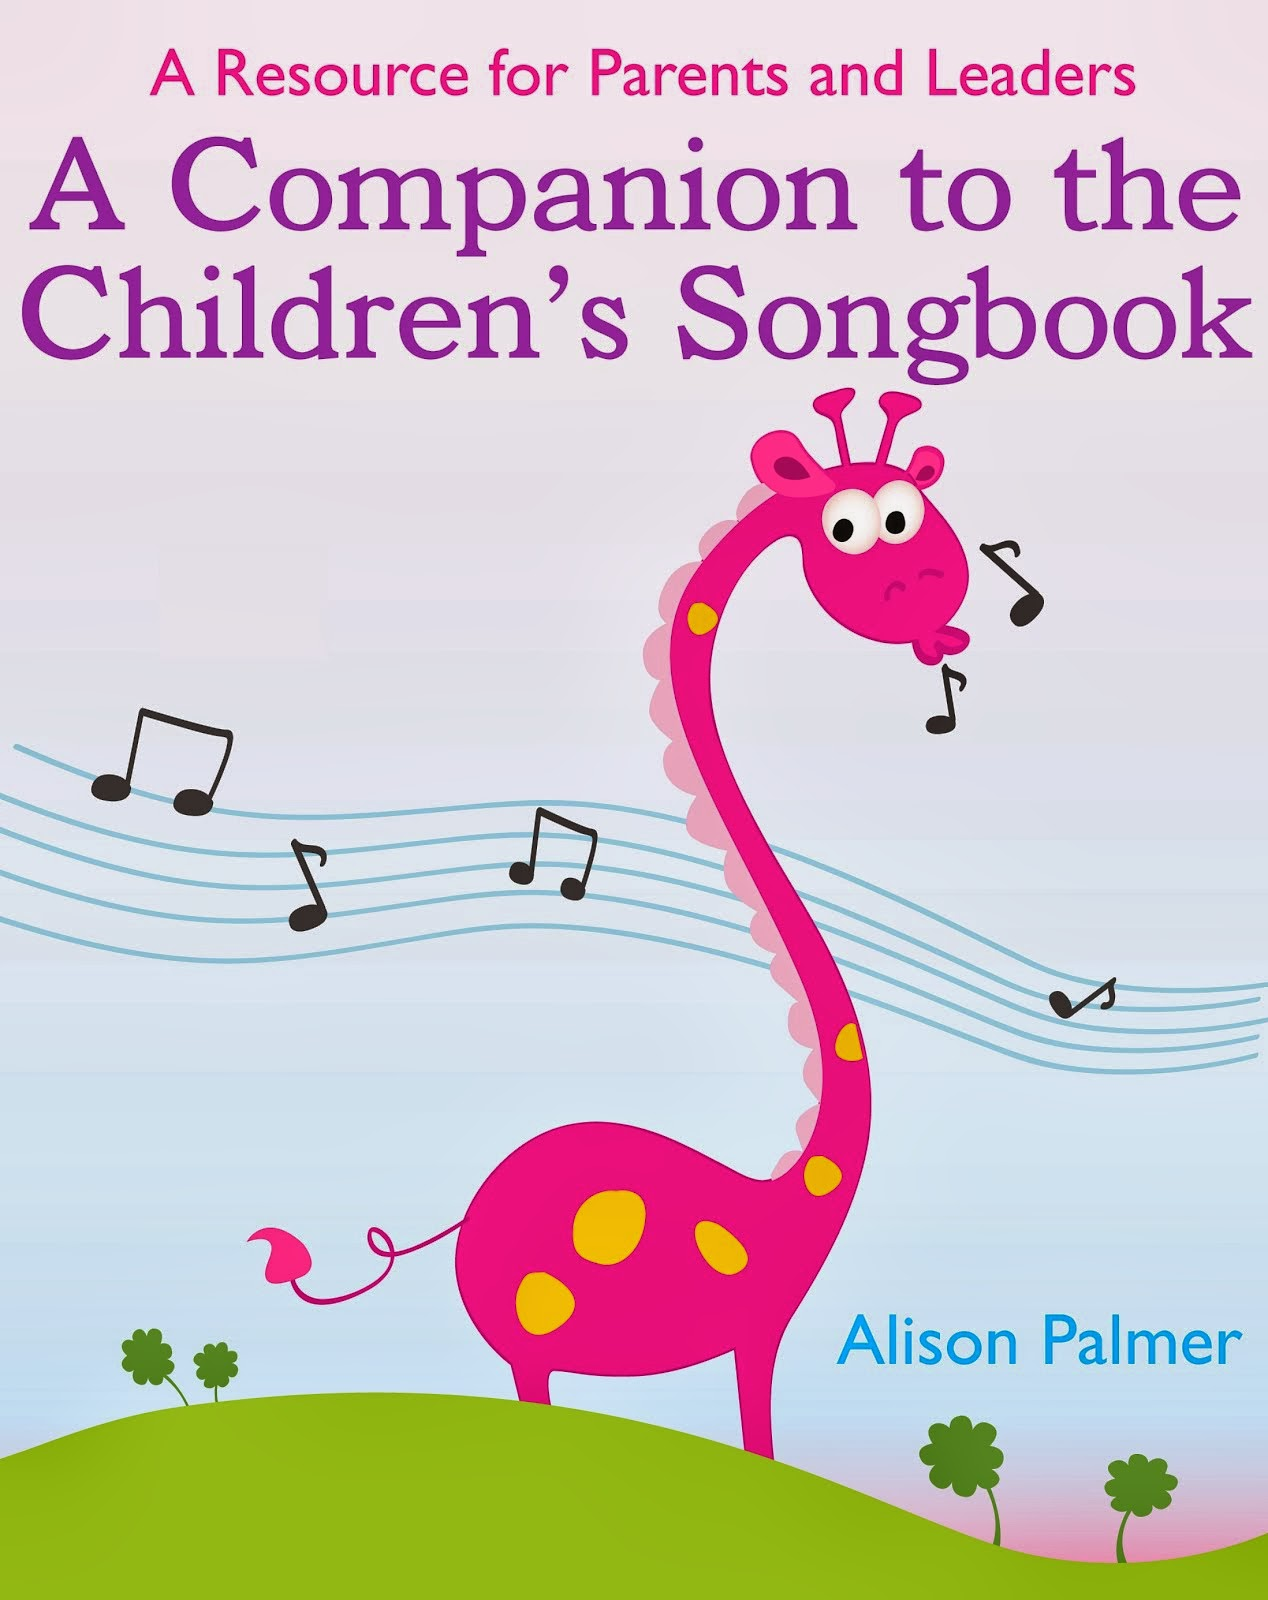 Children's Songbook Companion